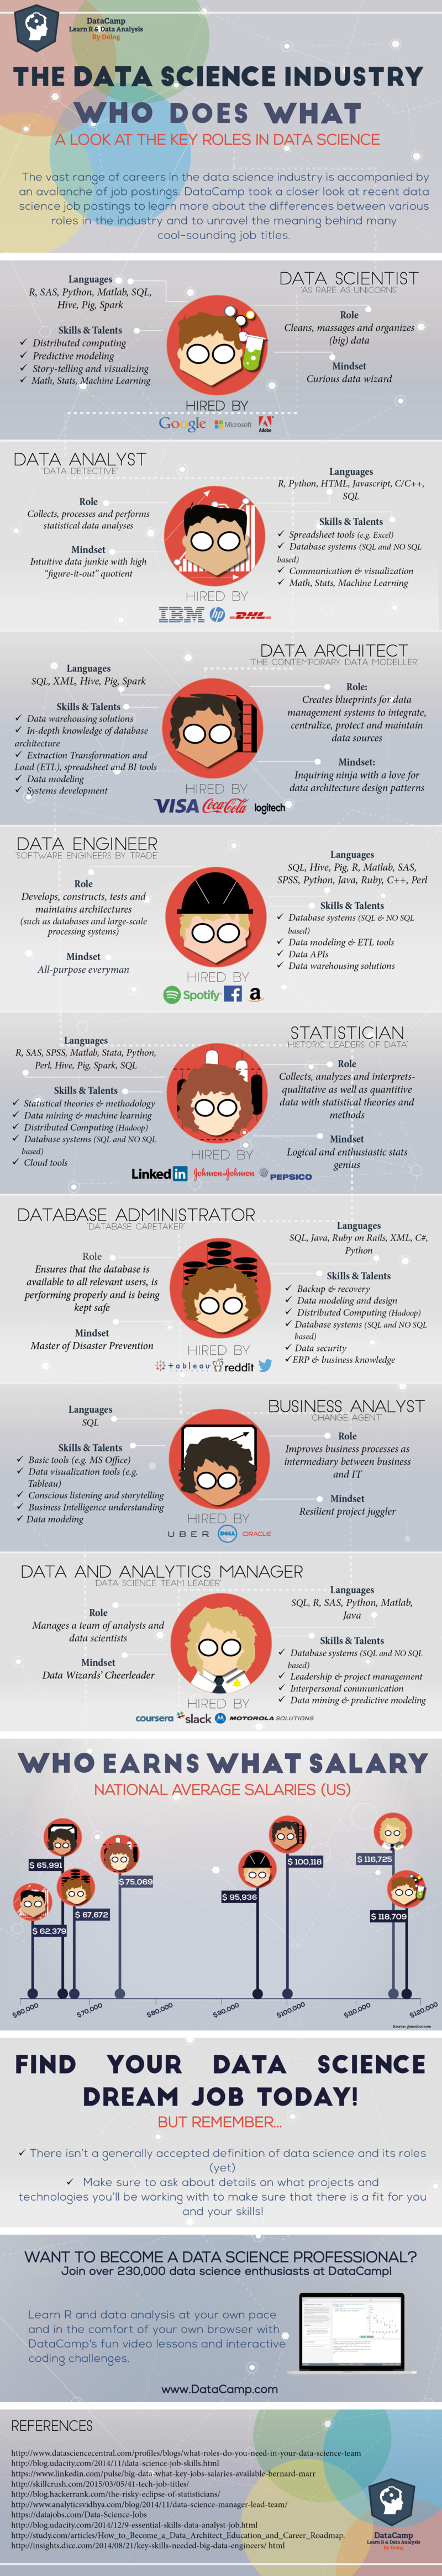 The Data Science Industry and Who Does What